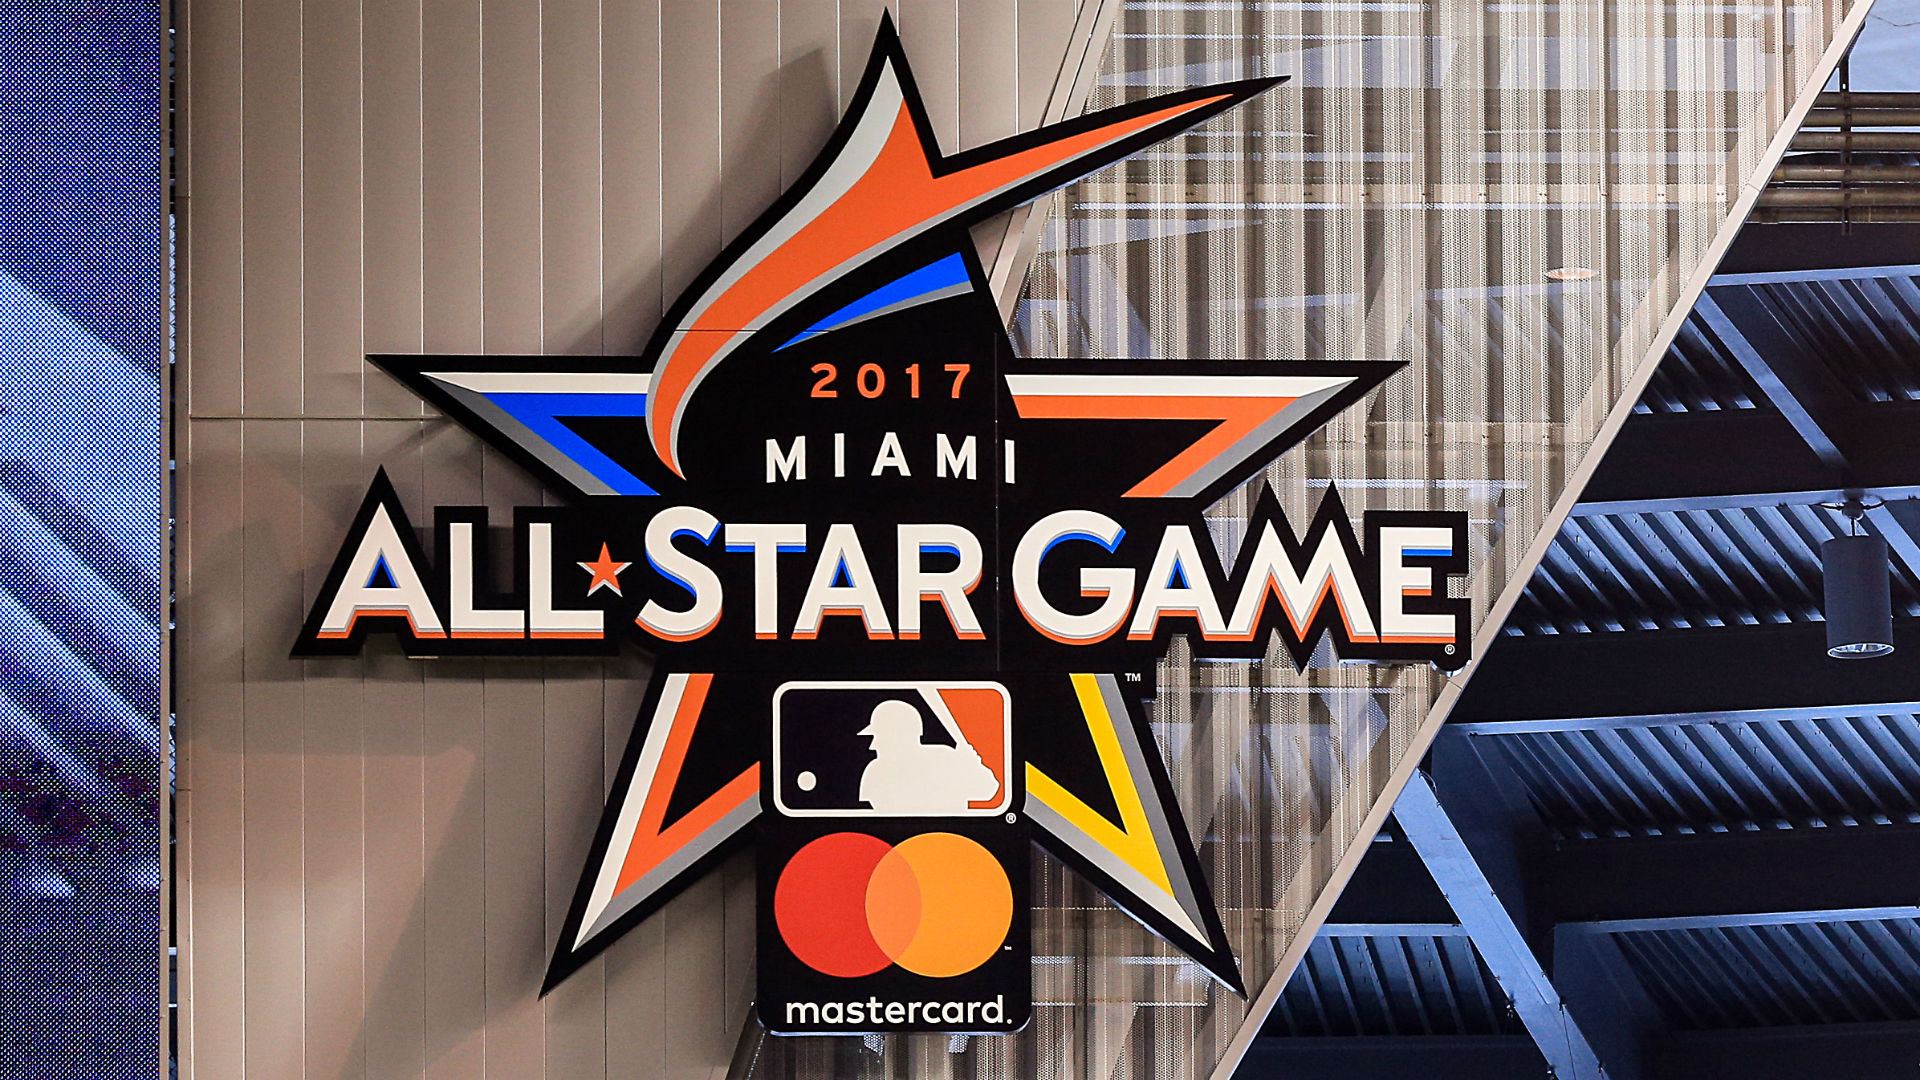 Most Memorable MLB All-Star Game Moments